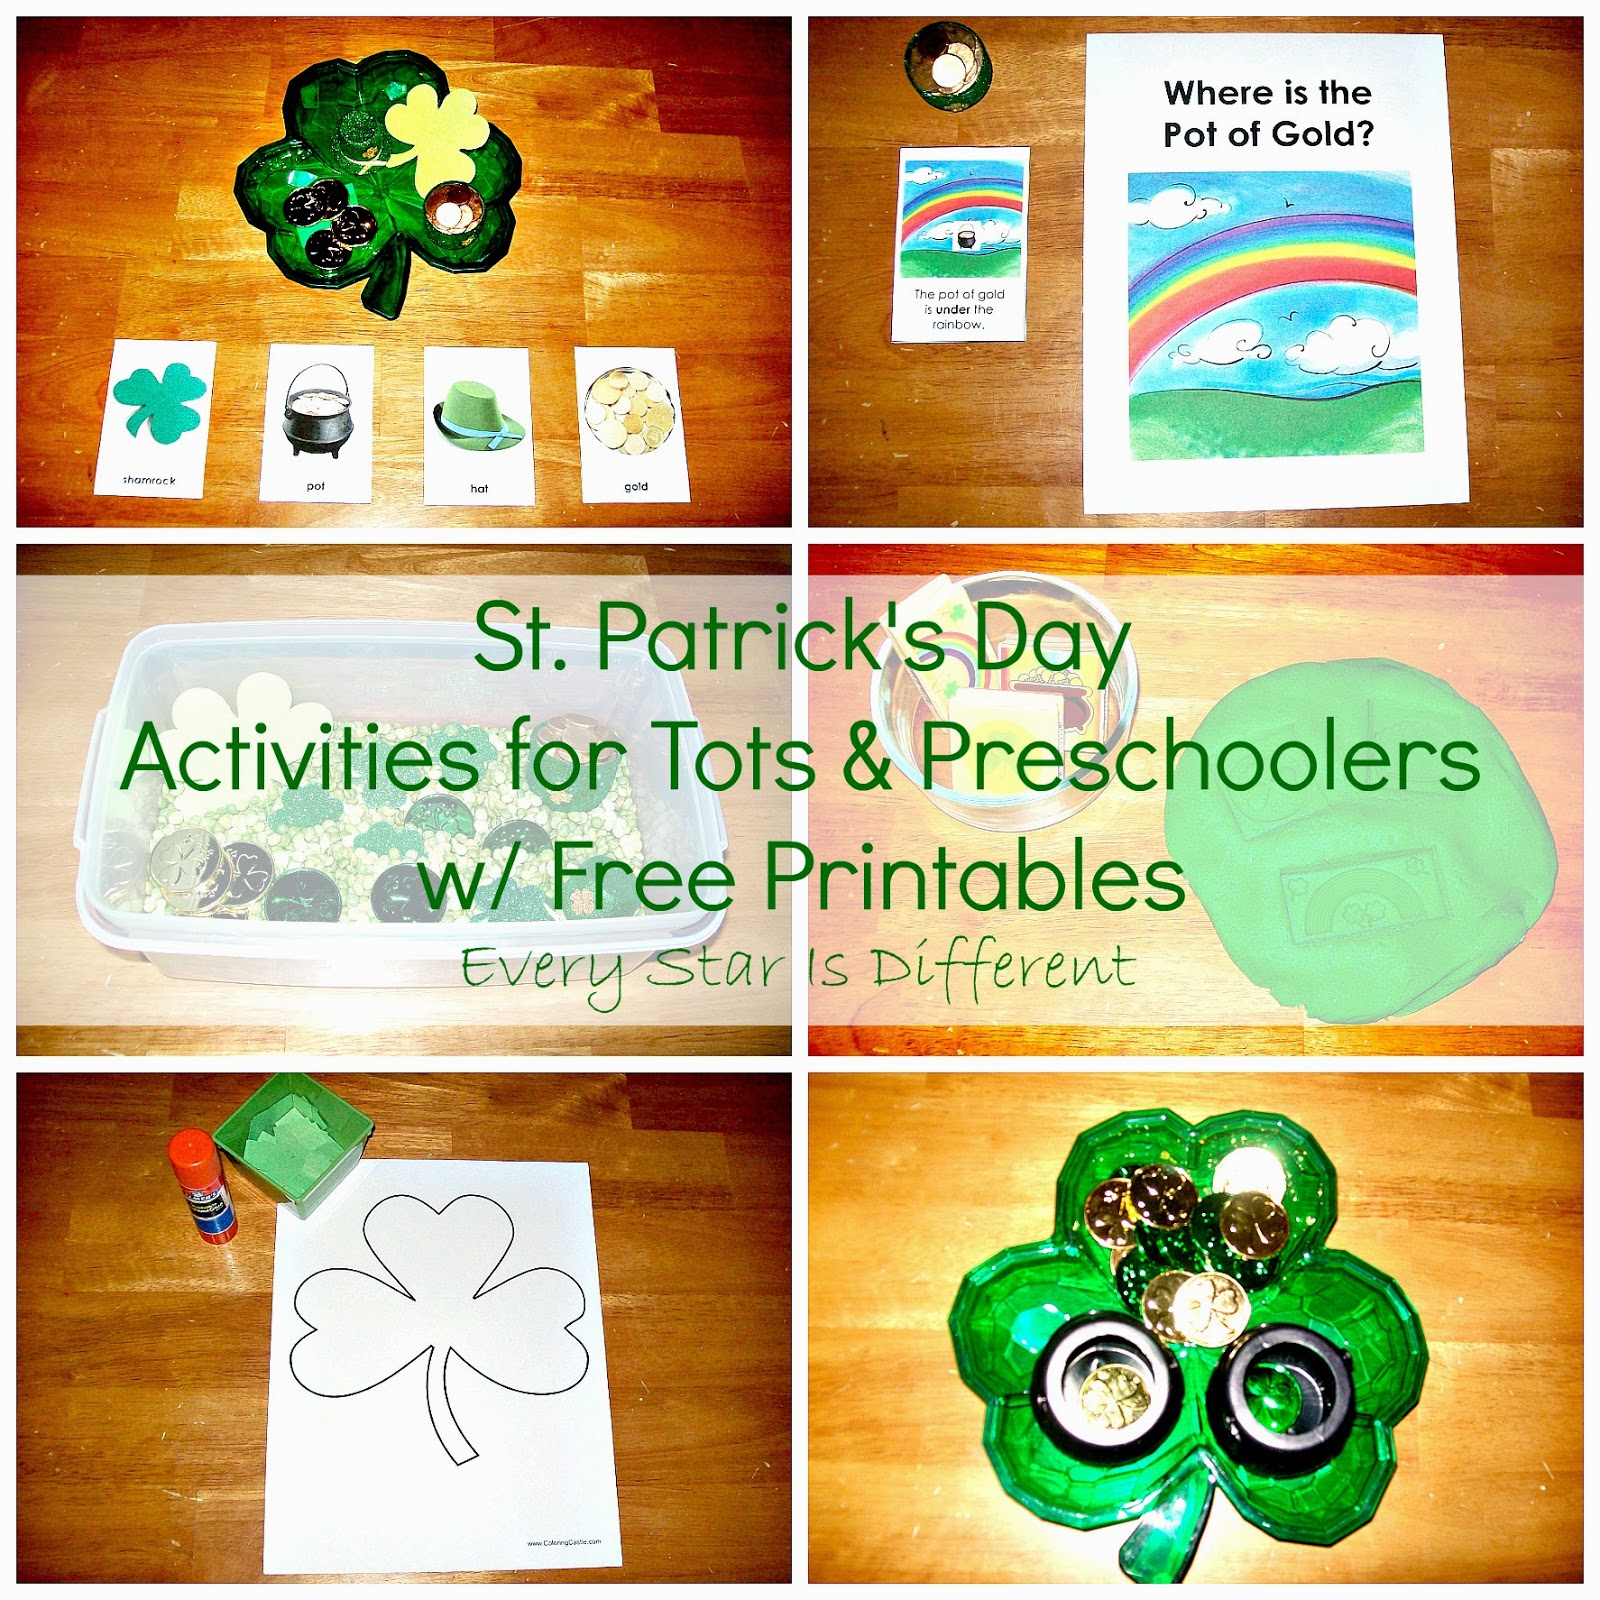 St. Patrick's Day Activities for Tots